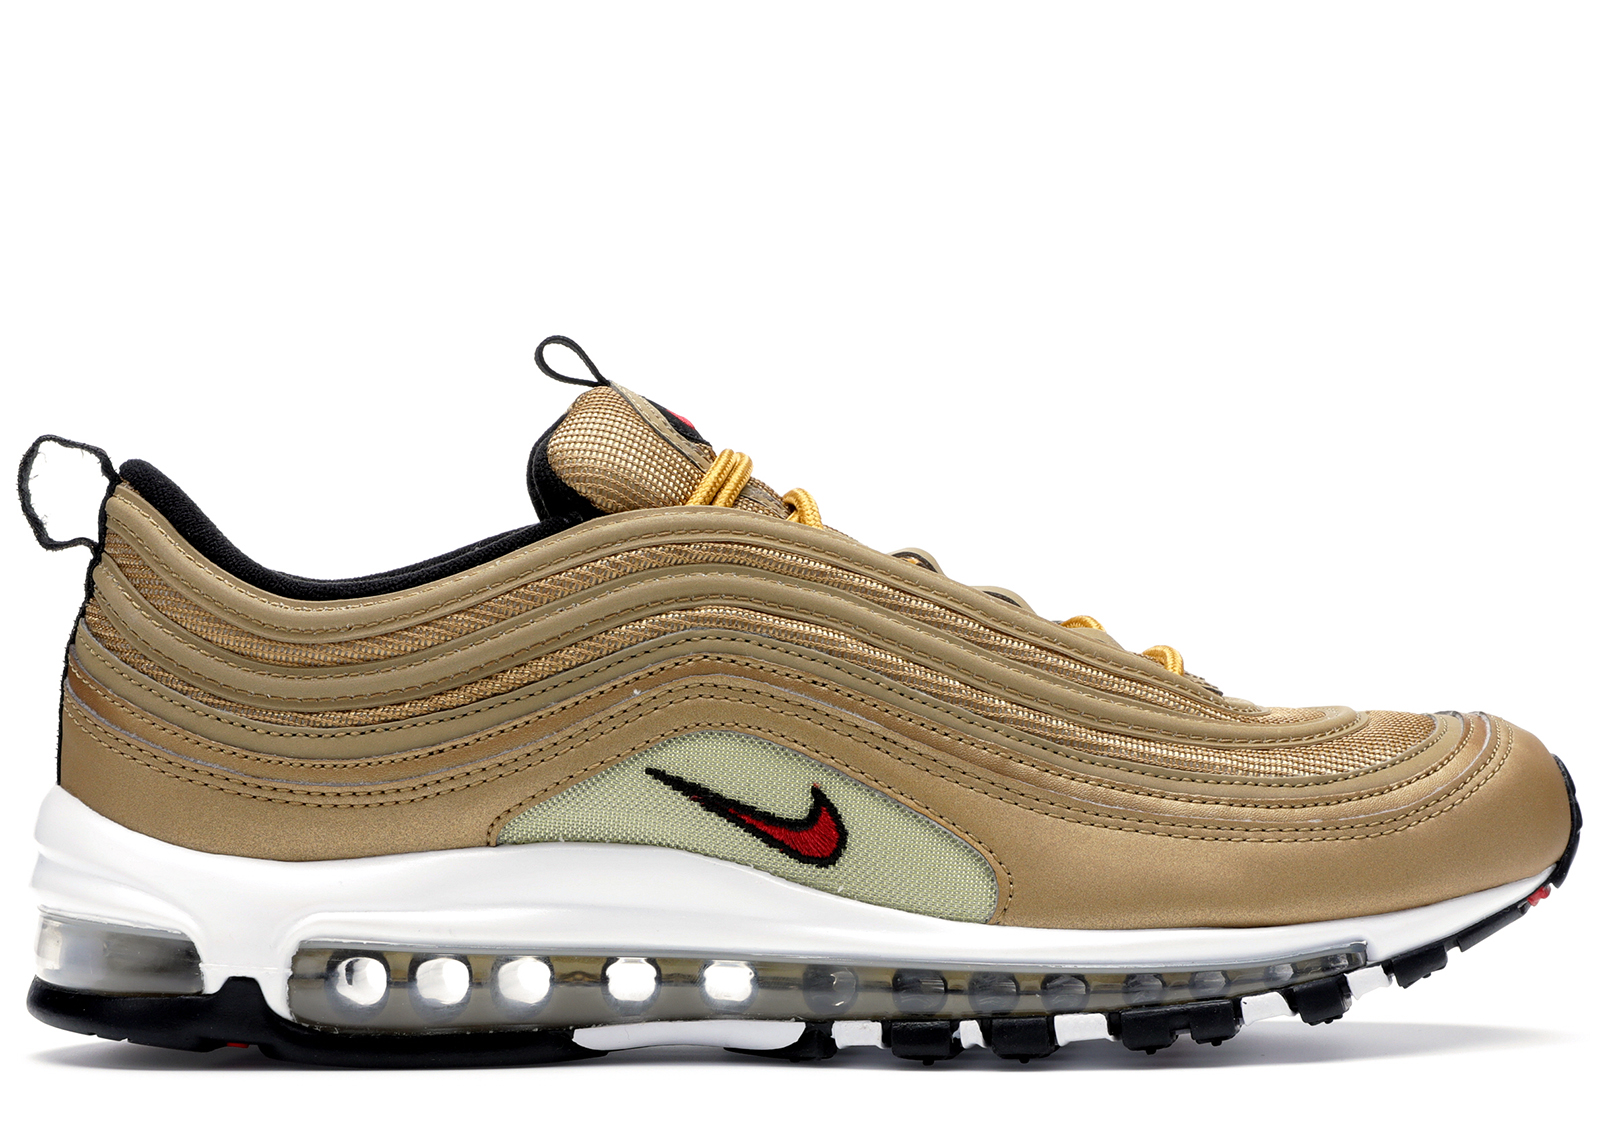 Men's Shoes Nike Air Max 97 Gold Bullet Athletic Shoes